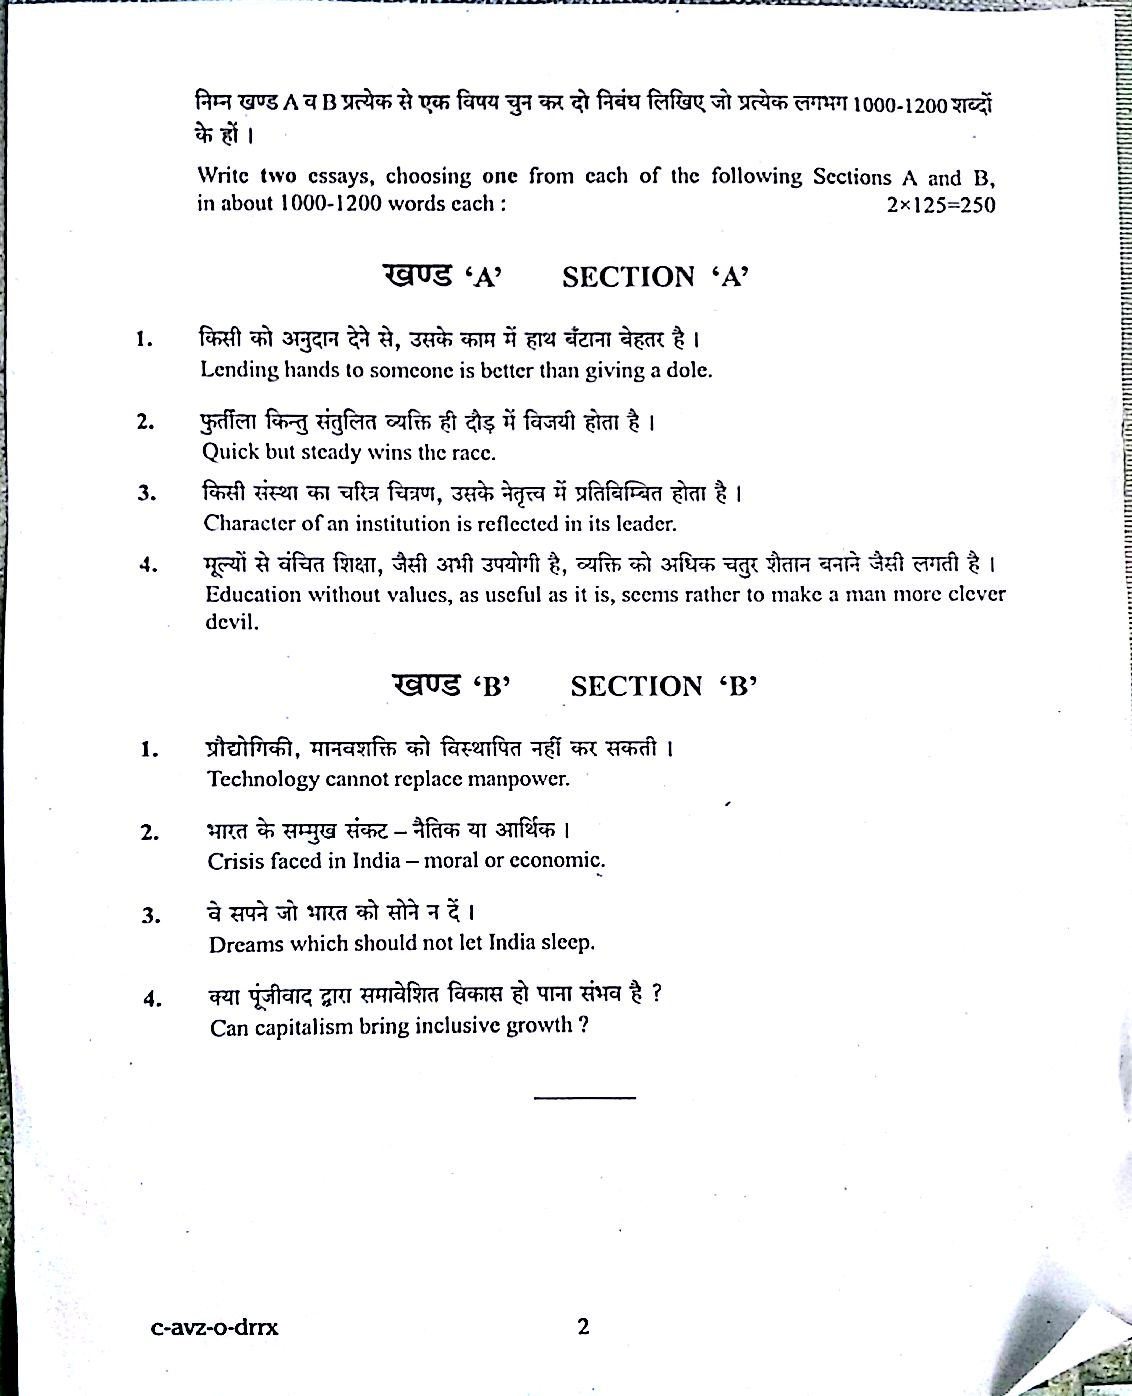 upsc mains question paper essay iasbaba essay 2